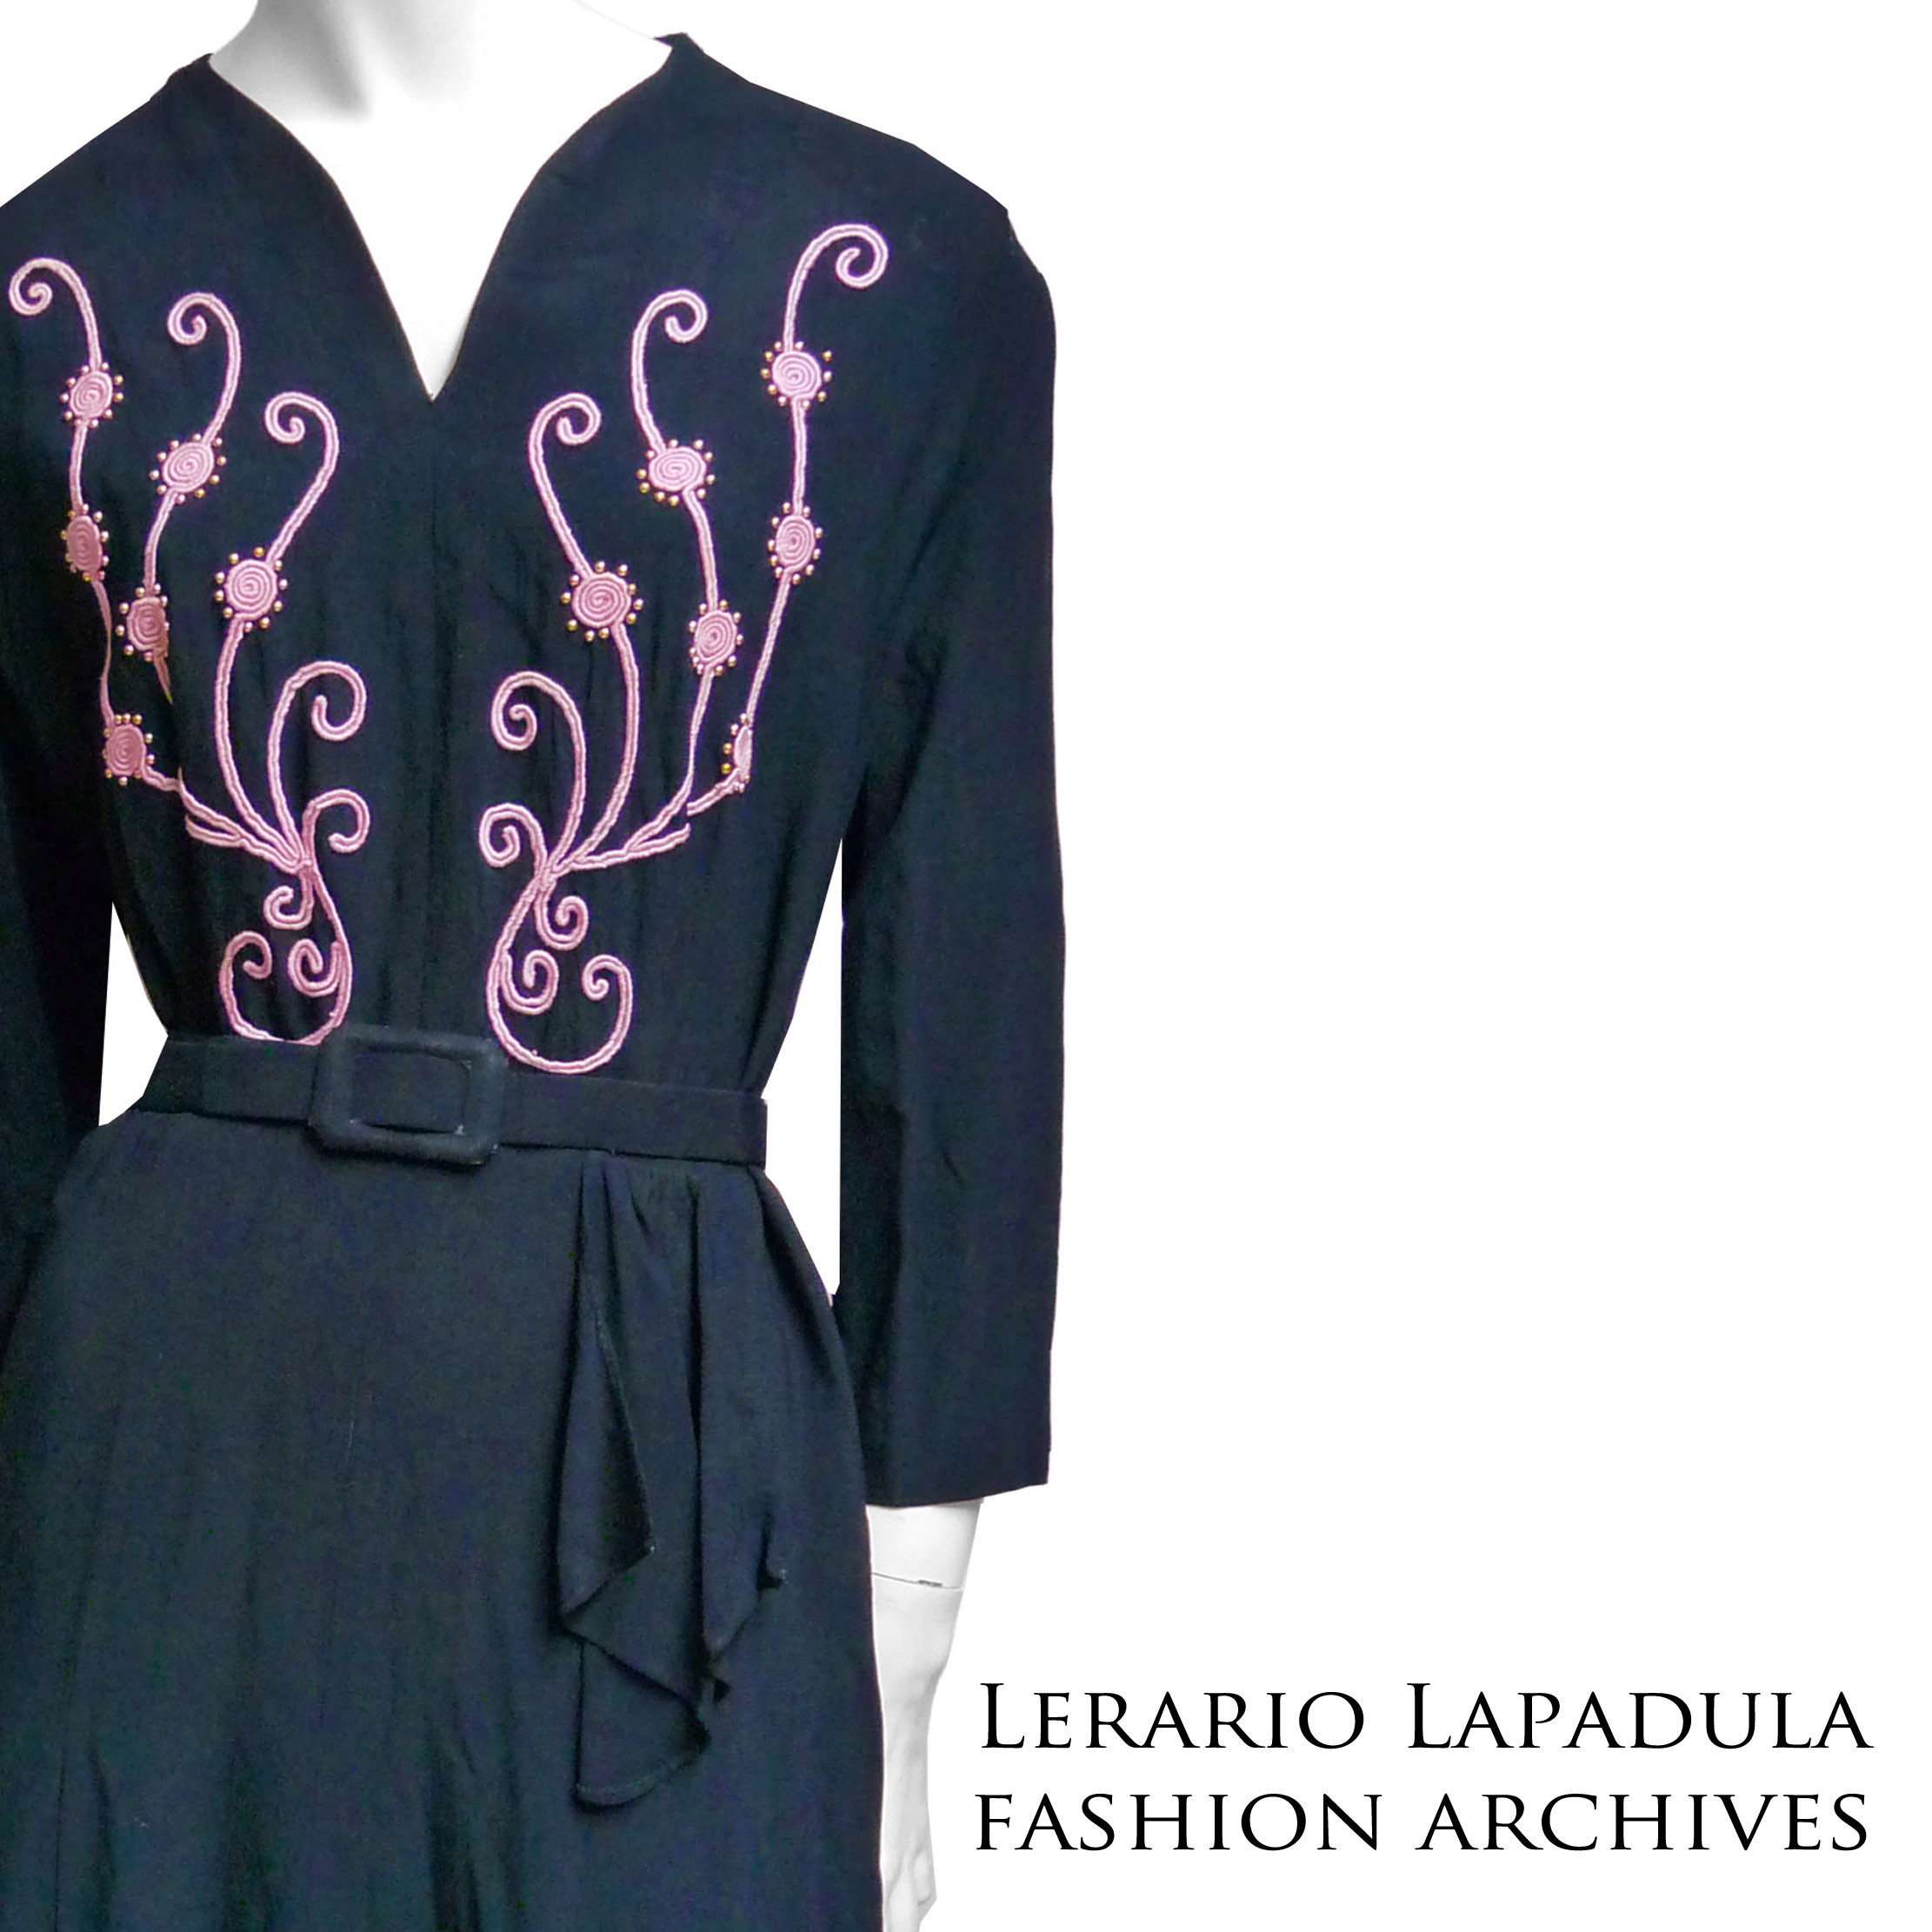 1938-dress-vintage-abito-vestito-30s-robe-wwii-40s-lerario-lapadula-fashion-museum-archives-schiaparelli